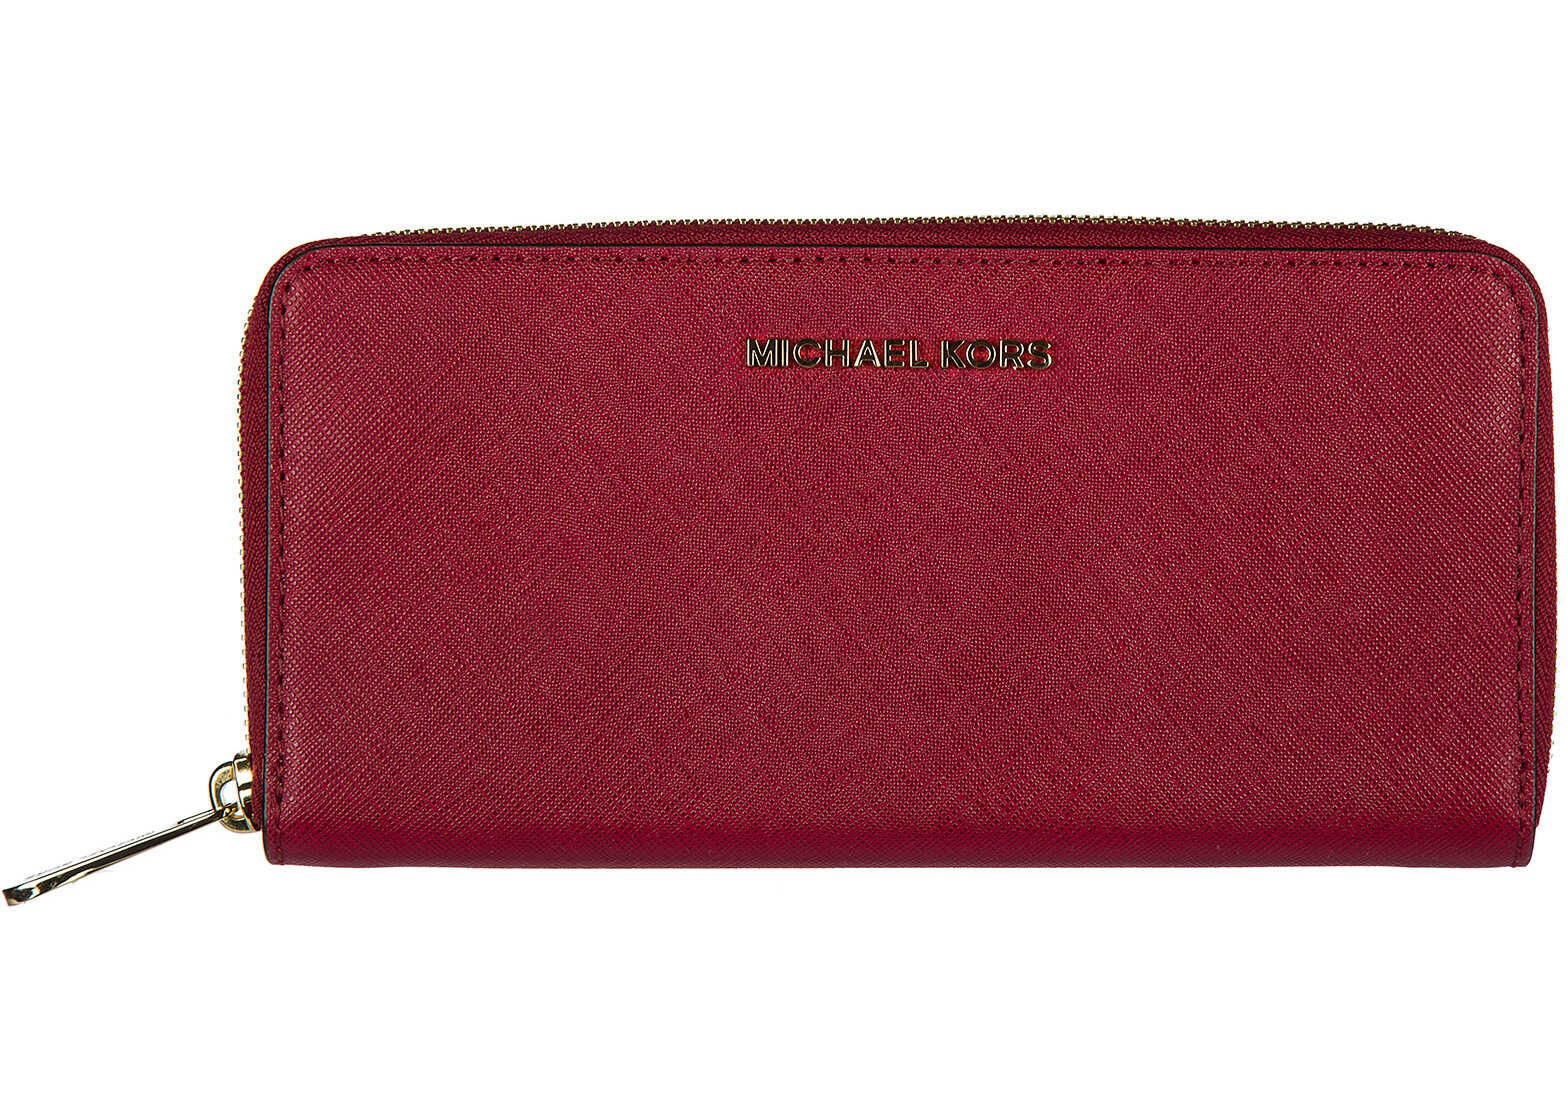 Michael Kors Set Travel Red